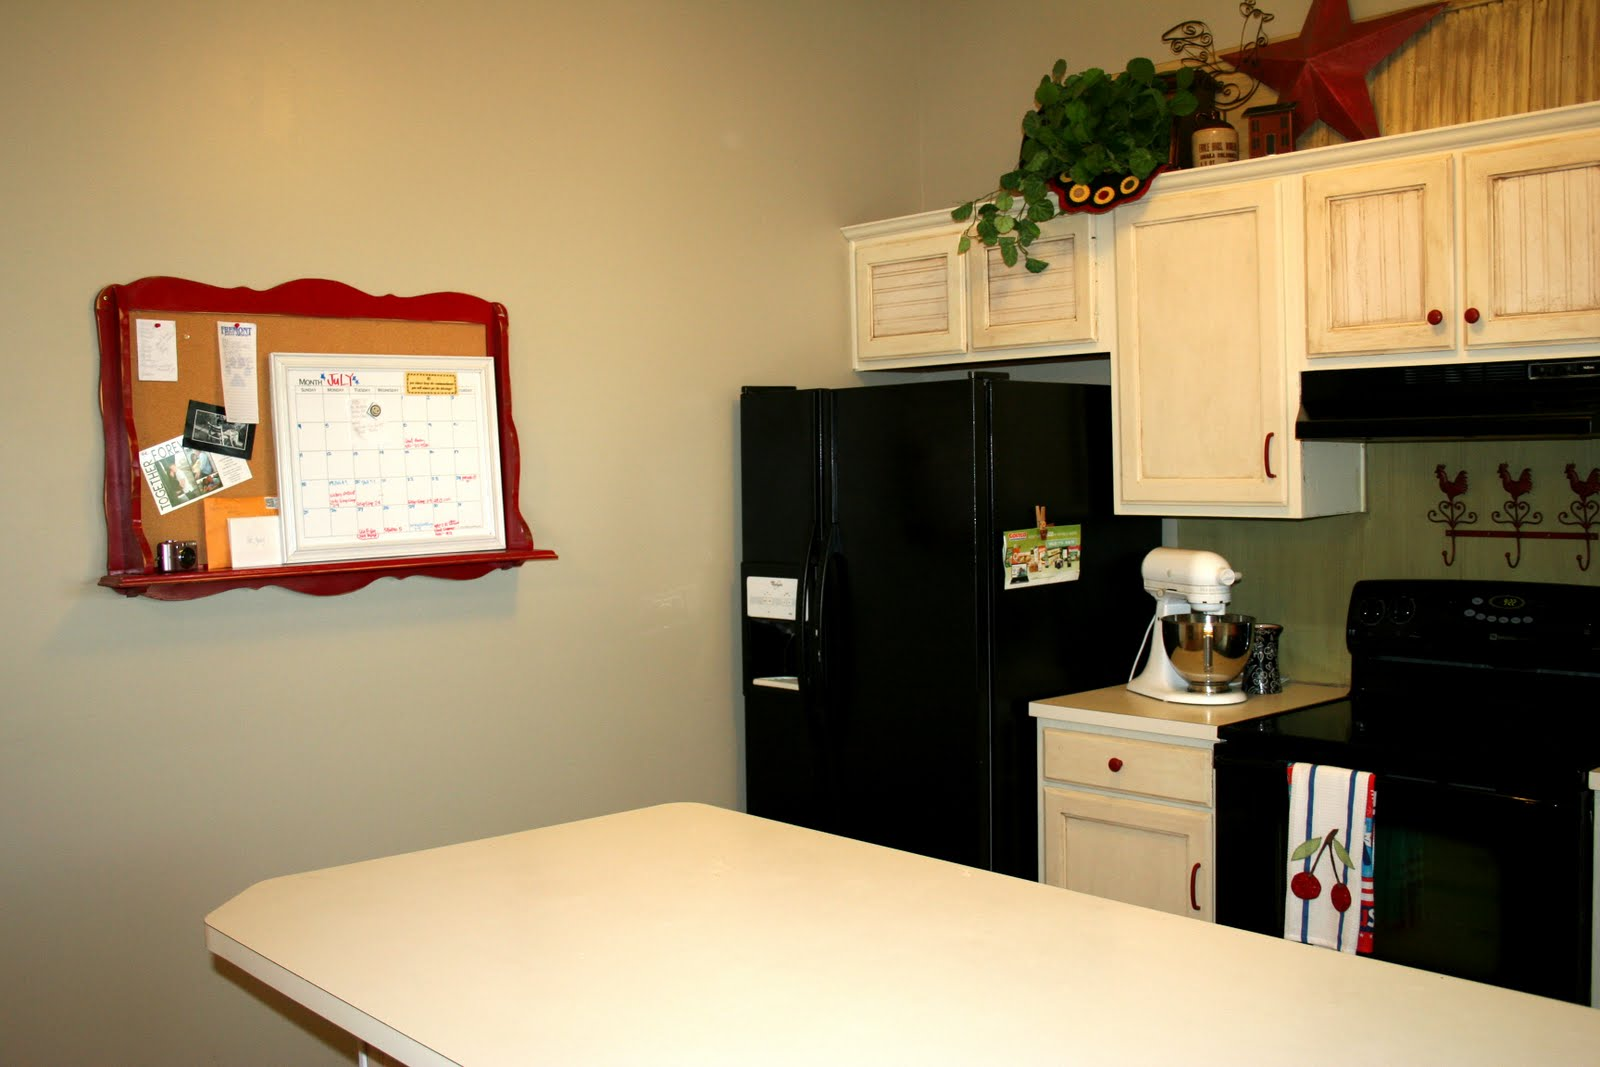 Happily decor after spray painting appliances - Paint for kitchen appliances ...